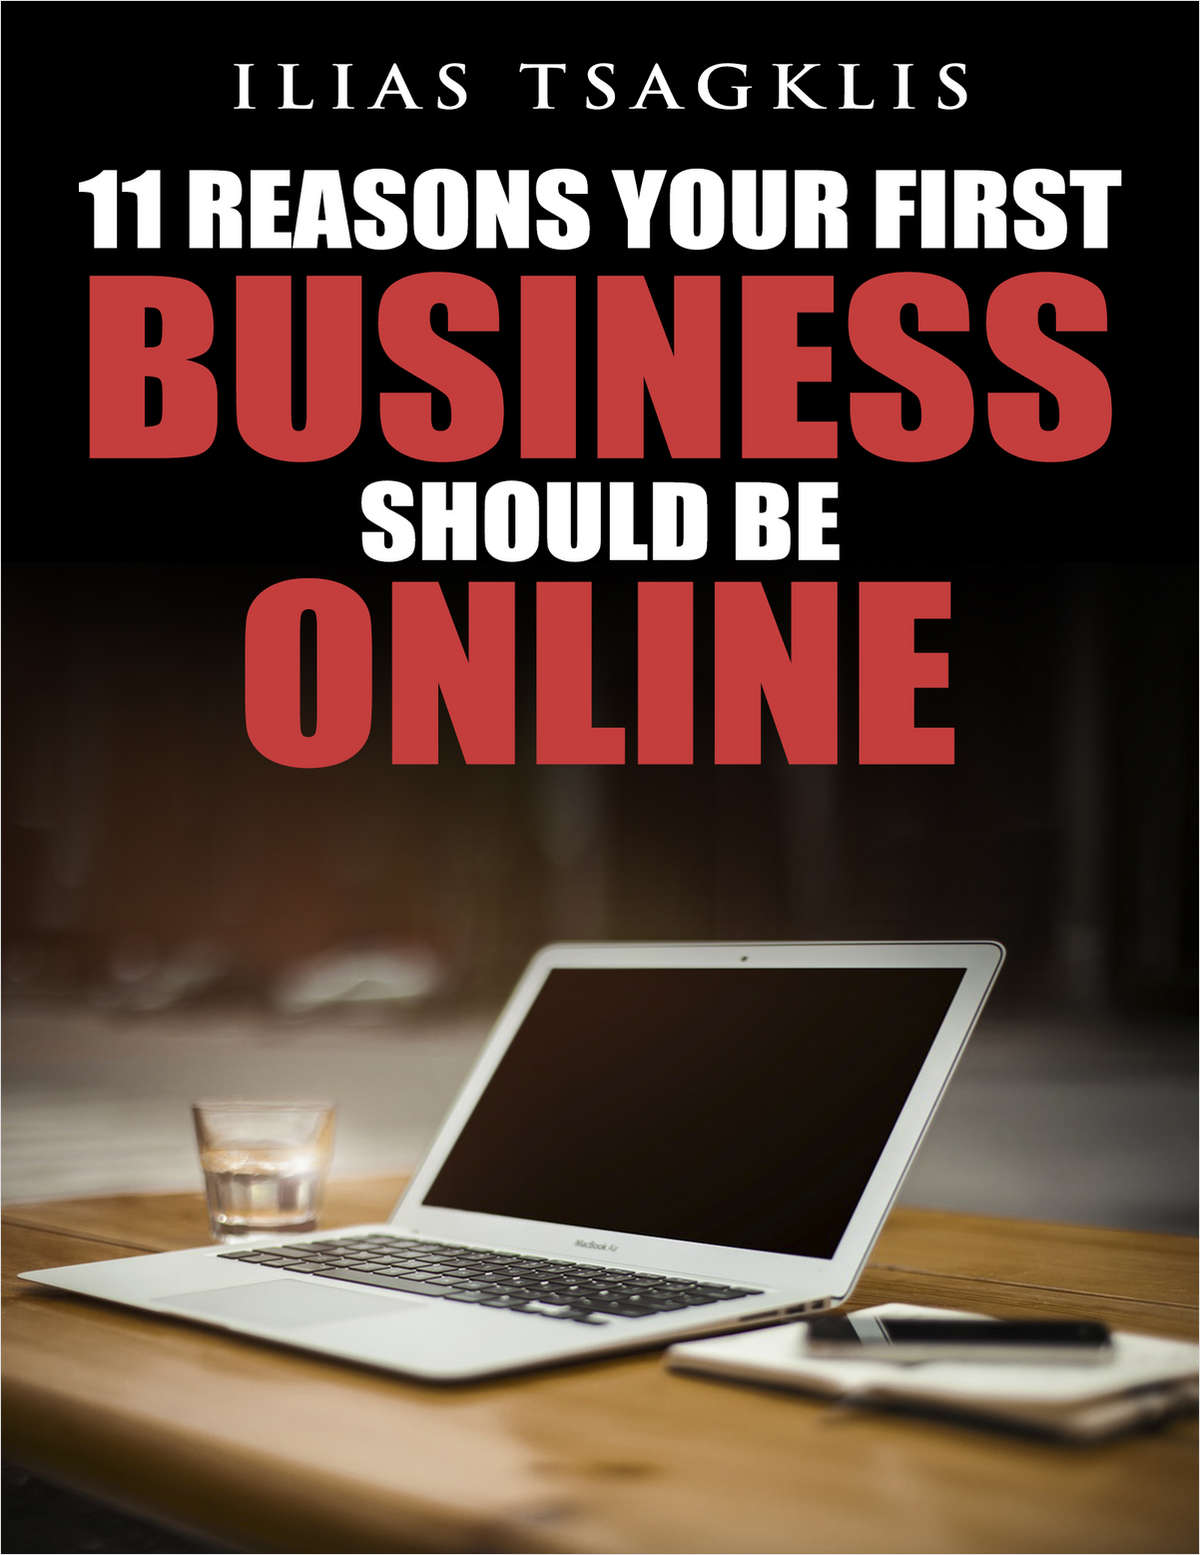 11 Reasons your First Business Should be Online